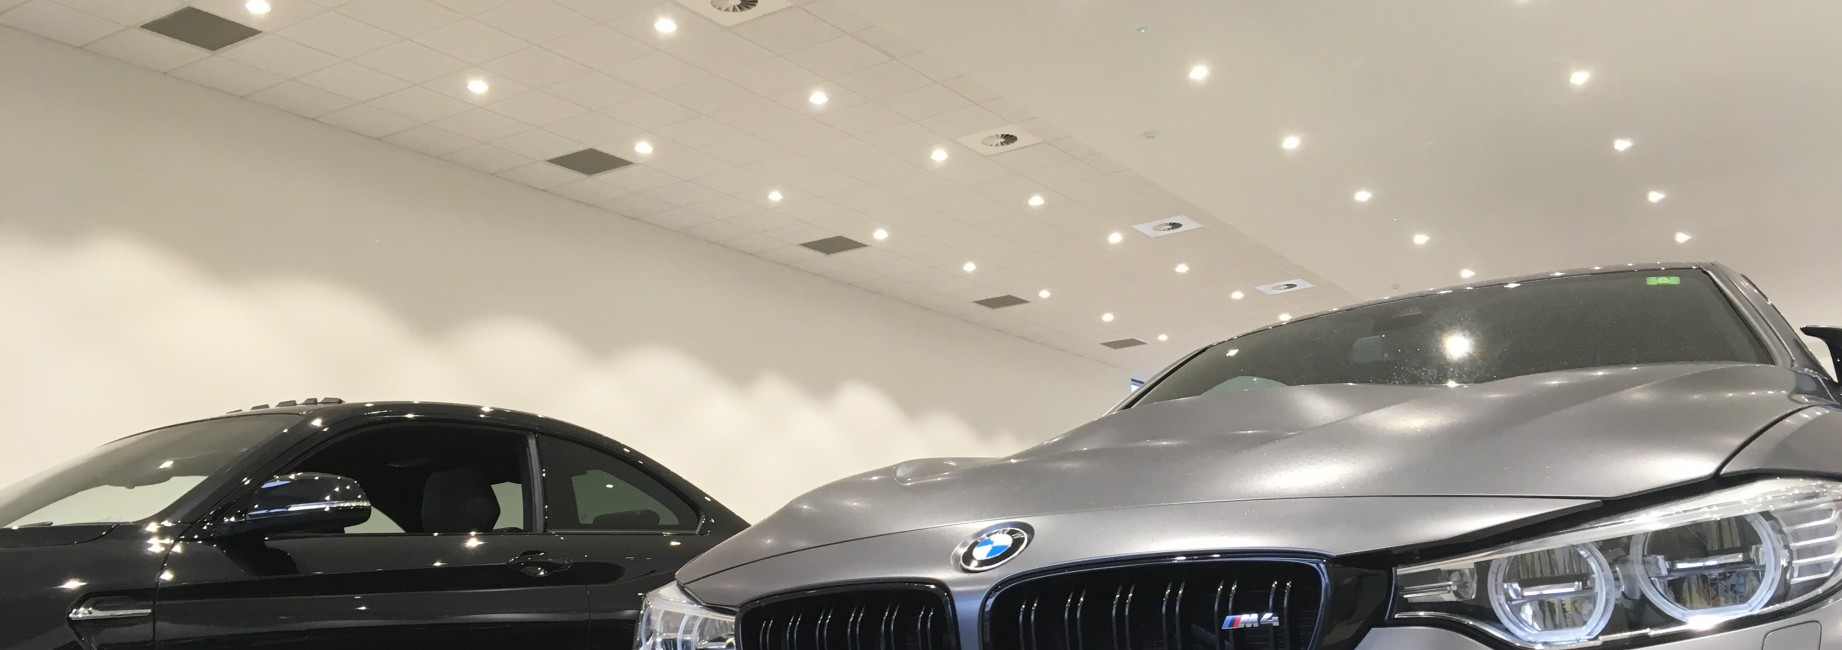 BMW Dealership, UK